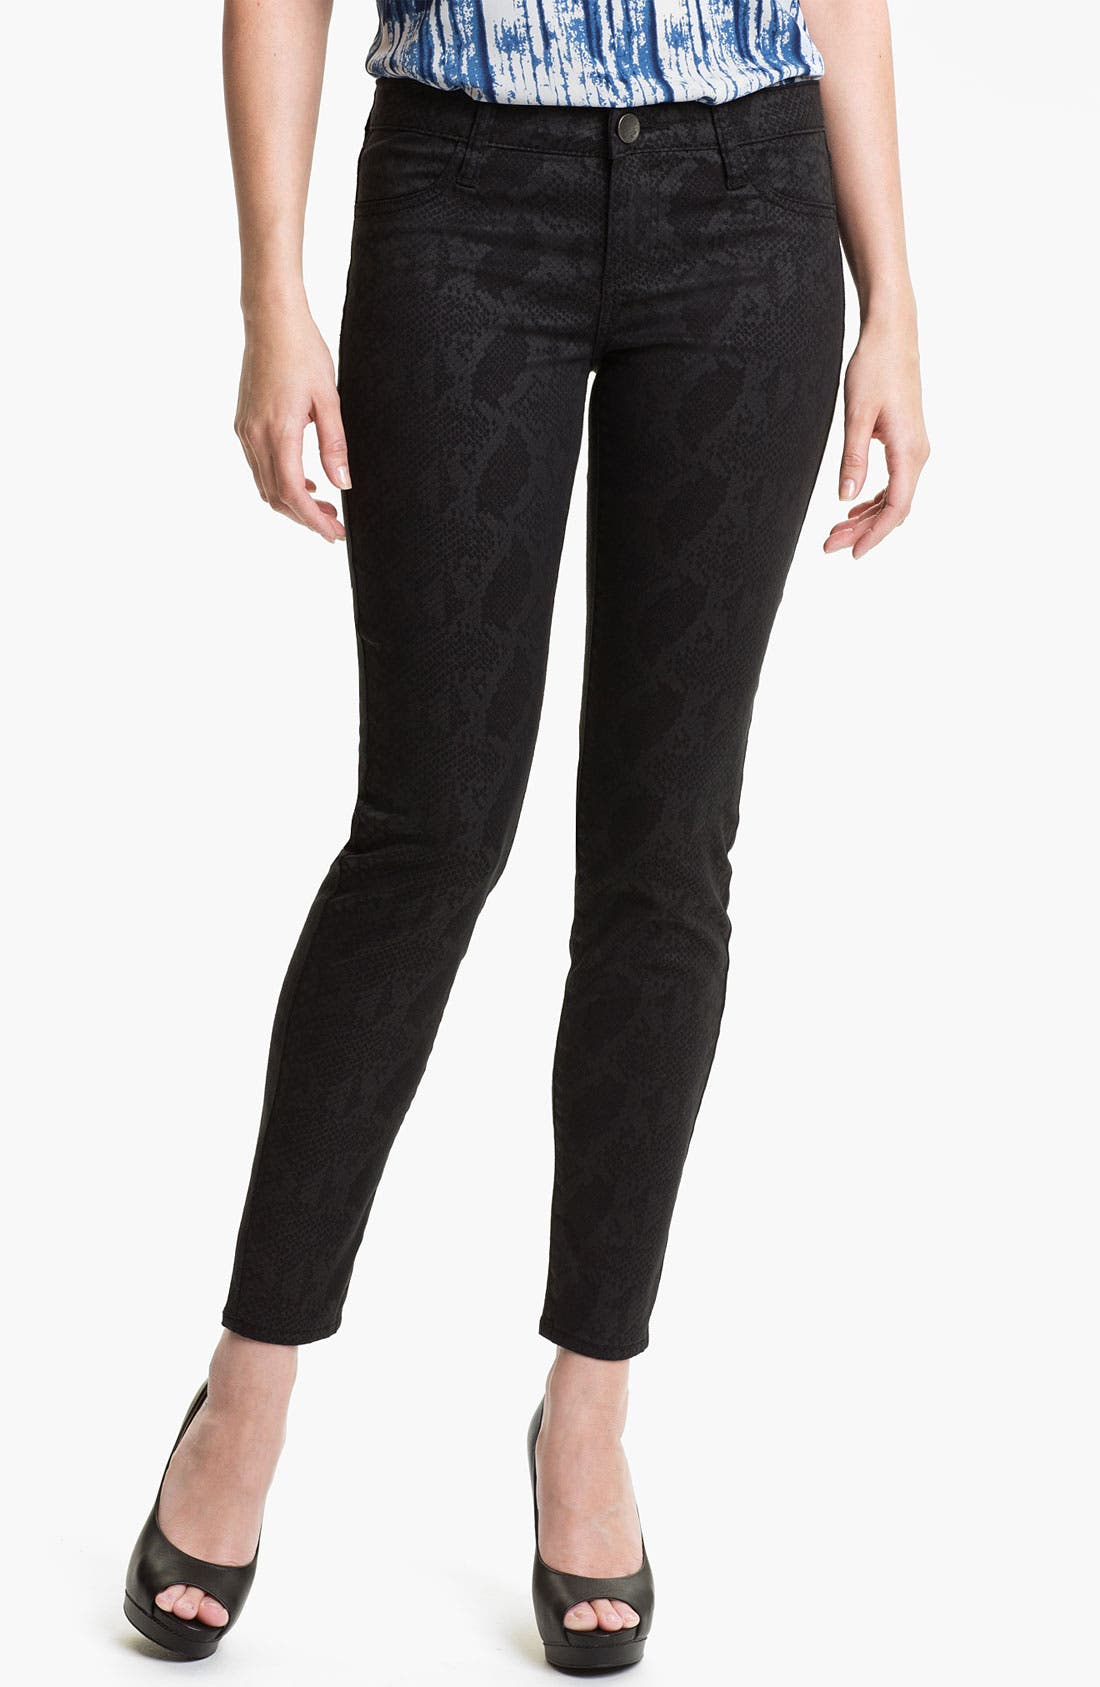 Alternate Image 1 Selected - KUT from the Kloth 'Jennifer' Skinny Stretch Jeans (Snakeskin Print) (Online Exclusive)